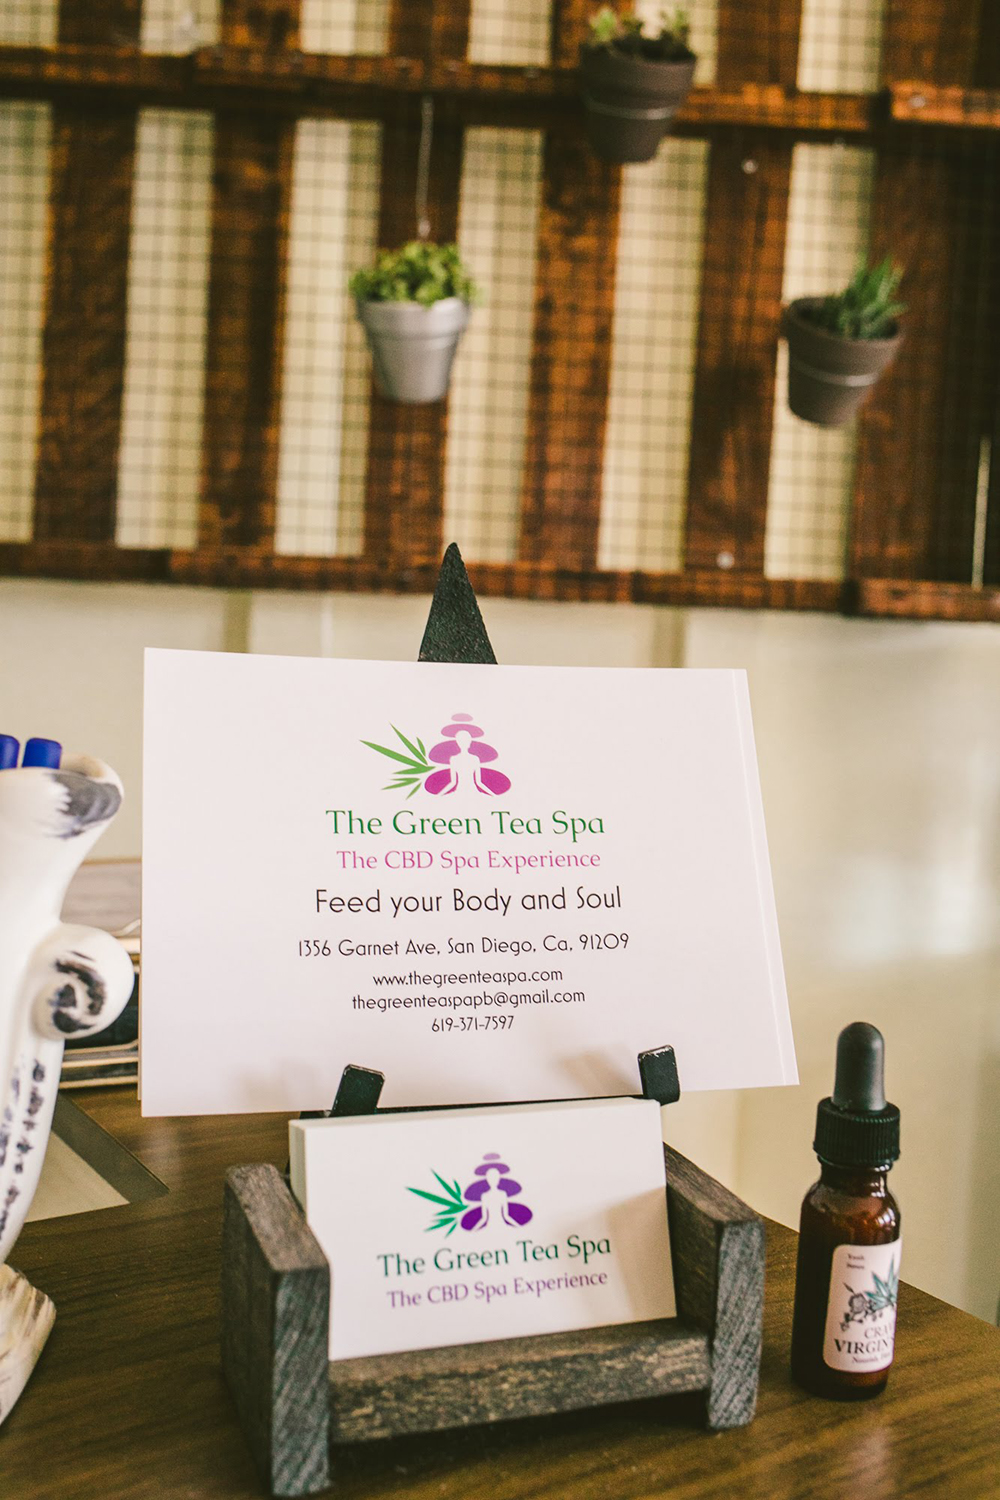 The Green Tea Spa offers a full menu of CBD services that include massages, foot soaks and facials. [Image courtesy of The Green Tea Spa]